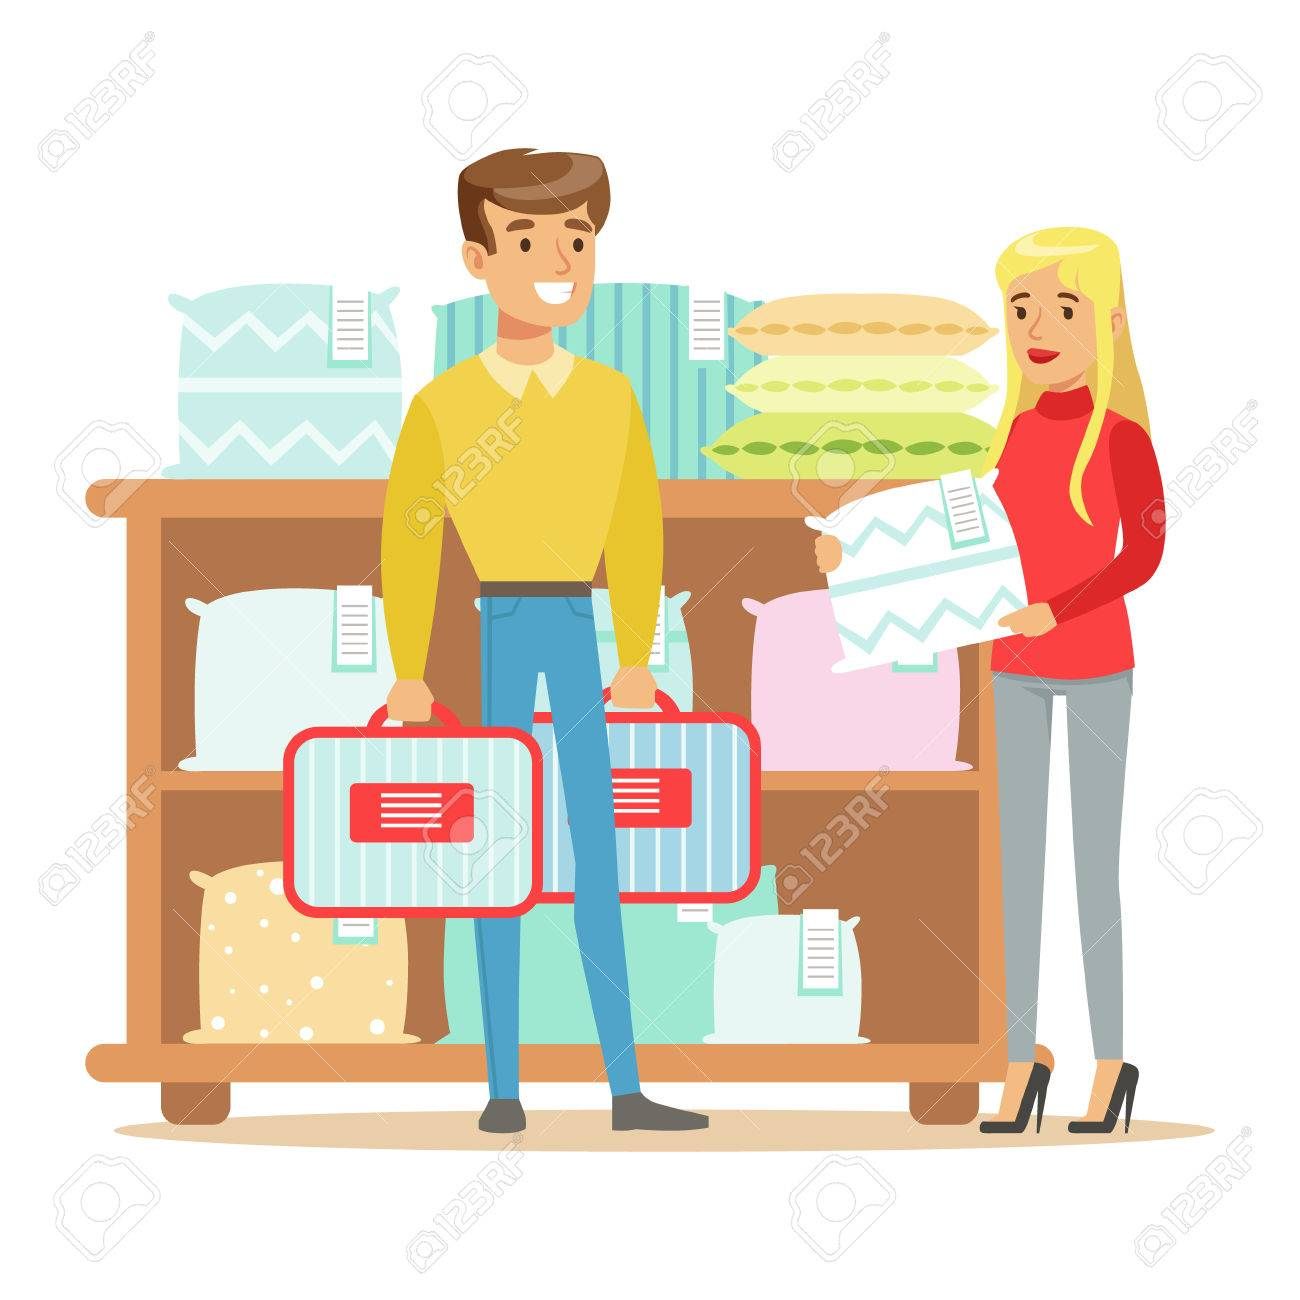 Bedroom Items. Couple Buying Bedsheets For Bedroom  Smiling Shopper In Furniture Shop Shopping House Decor Elements